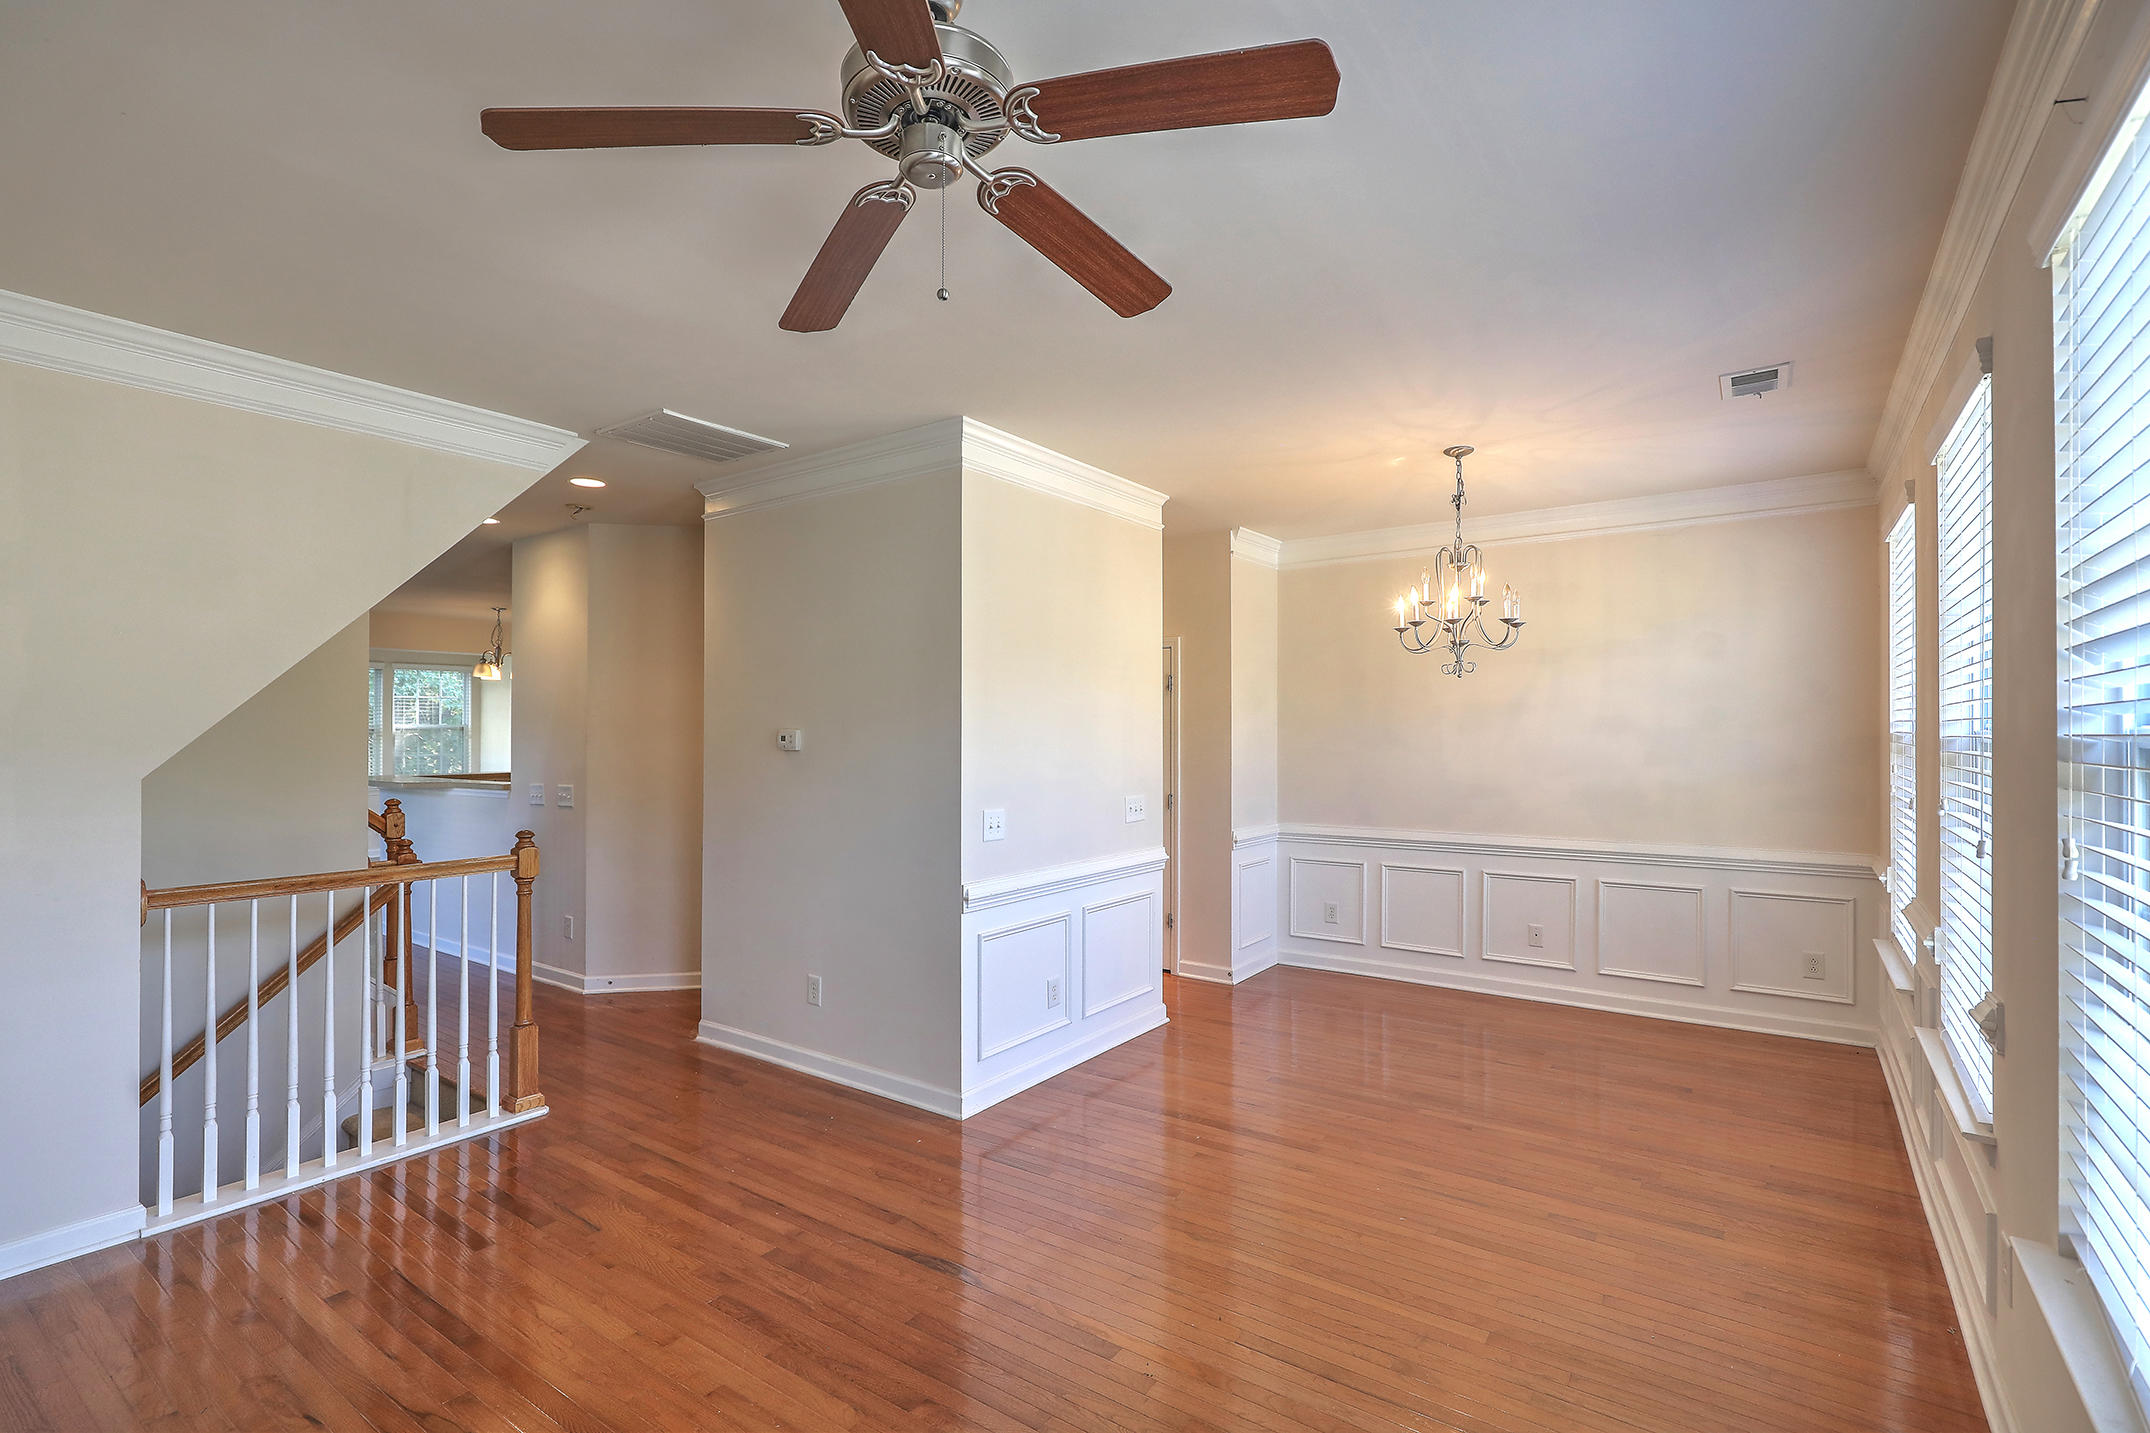 Kensington at Park West Homes For Sale - 3471 Claremont, Mount Pleasant, SC - 27